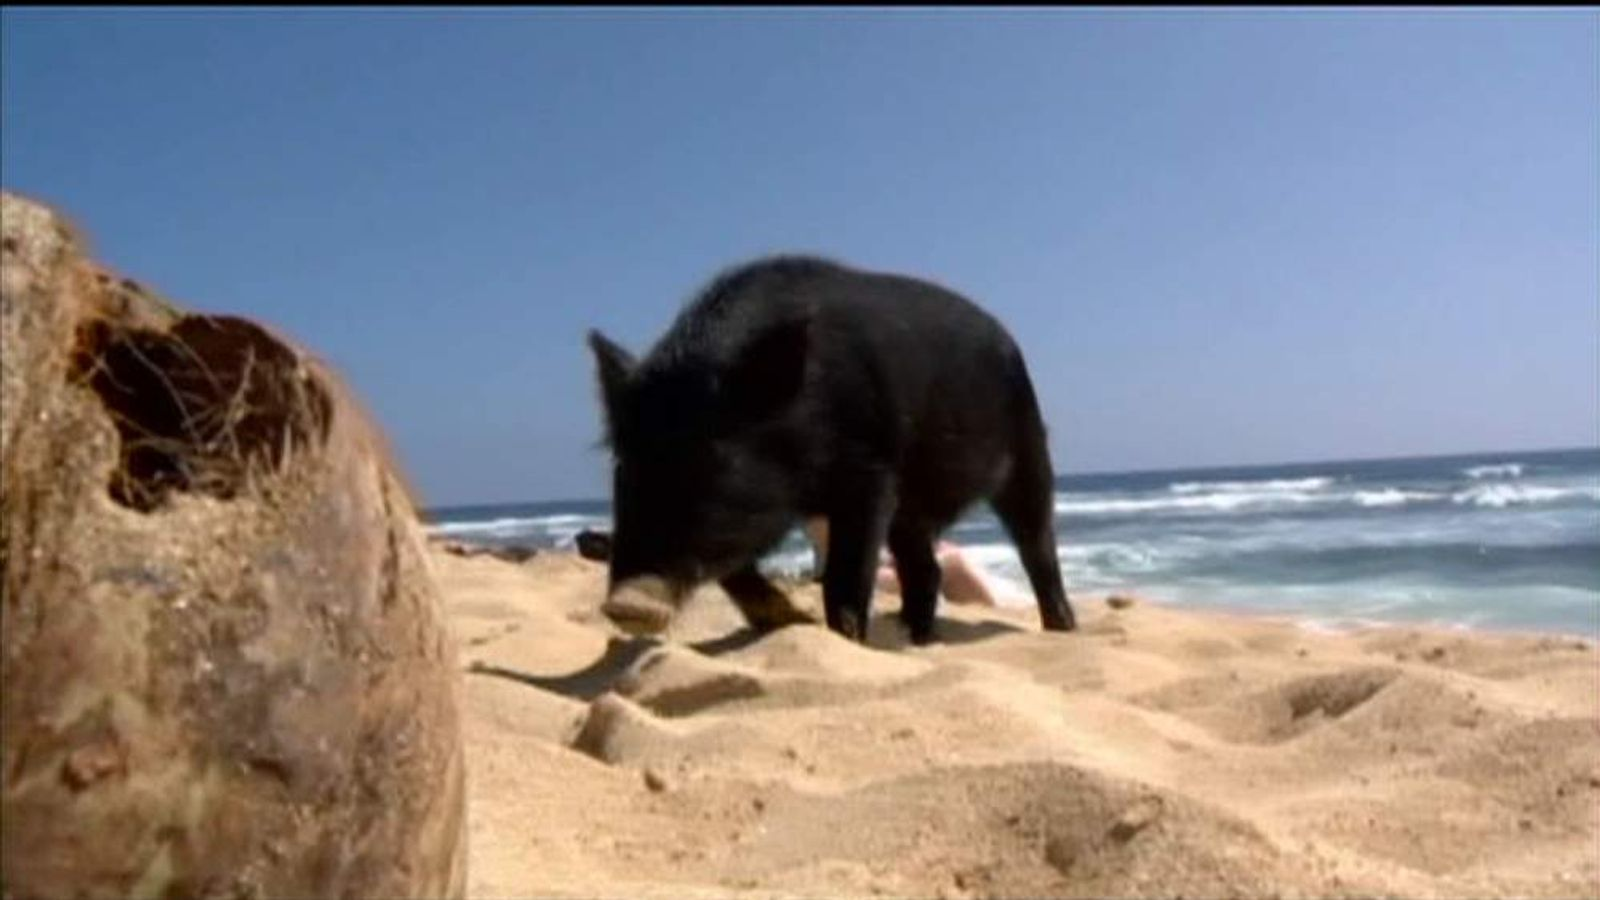 Kama-pooa The Surfing Pig On A Beach In Hawaii